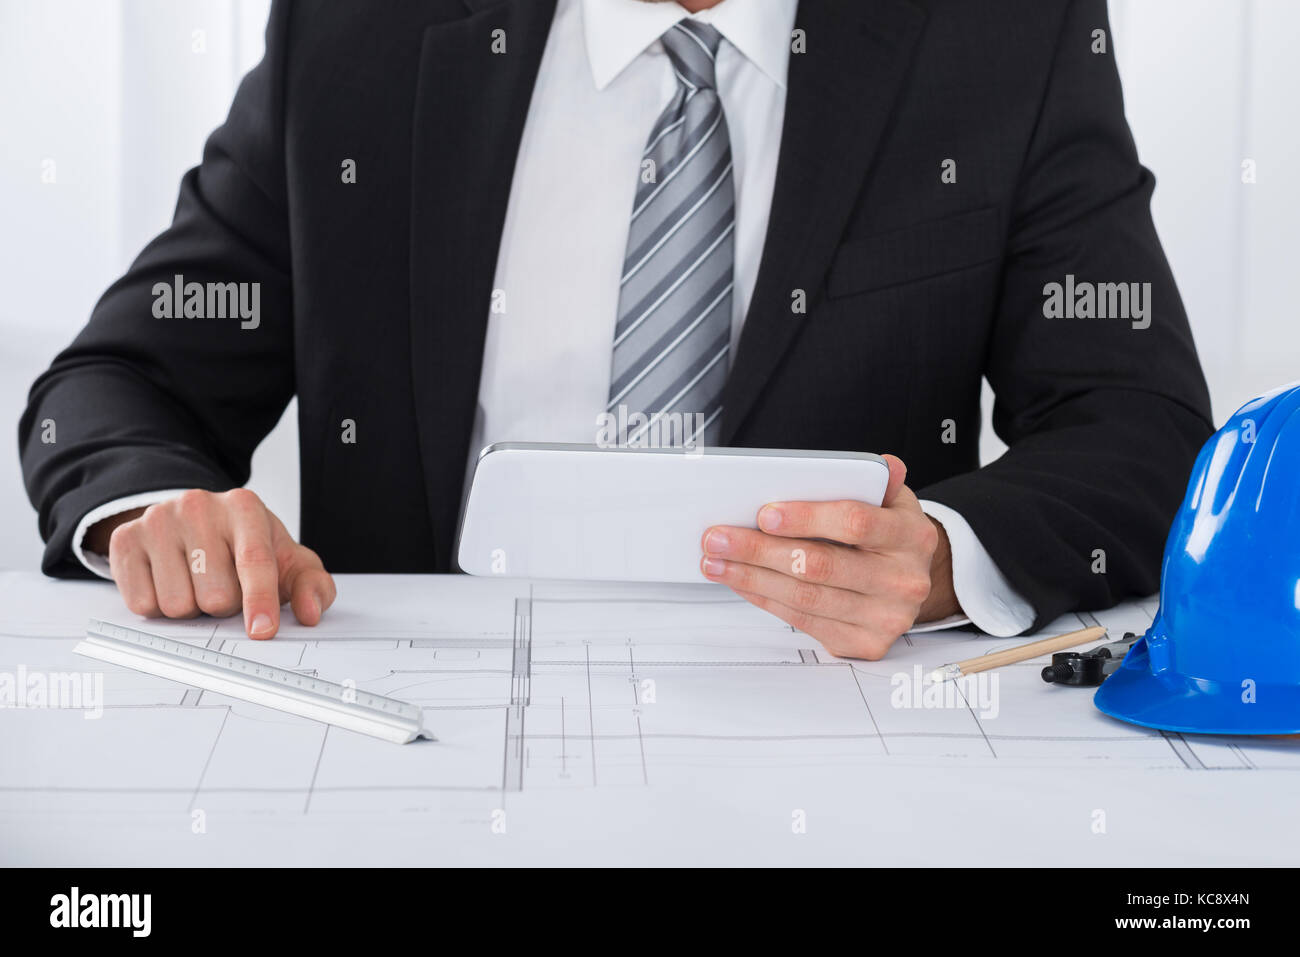 Close-up Of Male Architecture Using Digital Tablet Over Blueprint - Stock Image